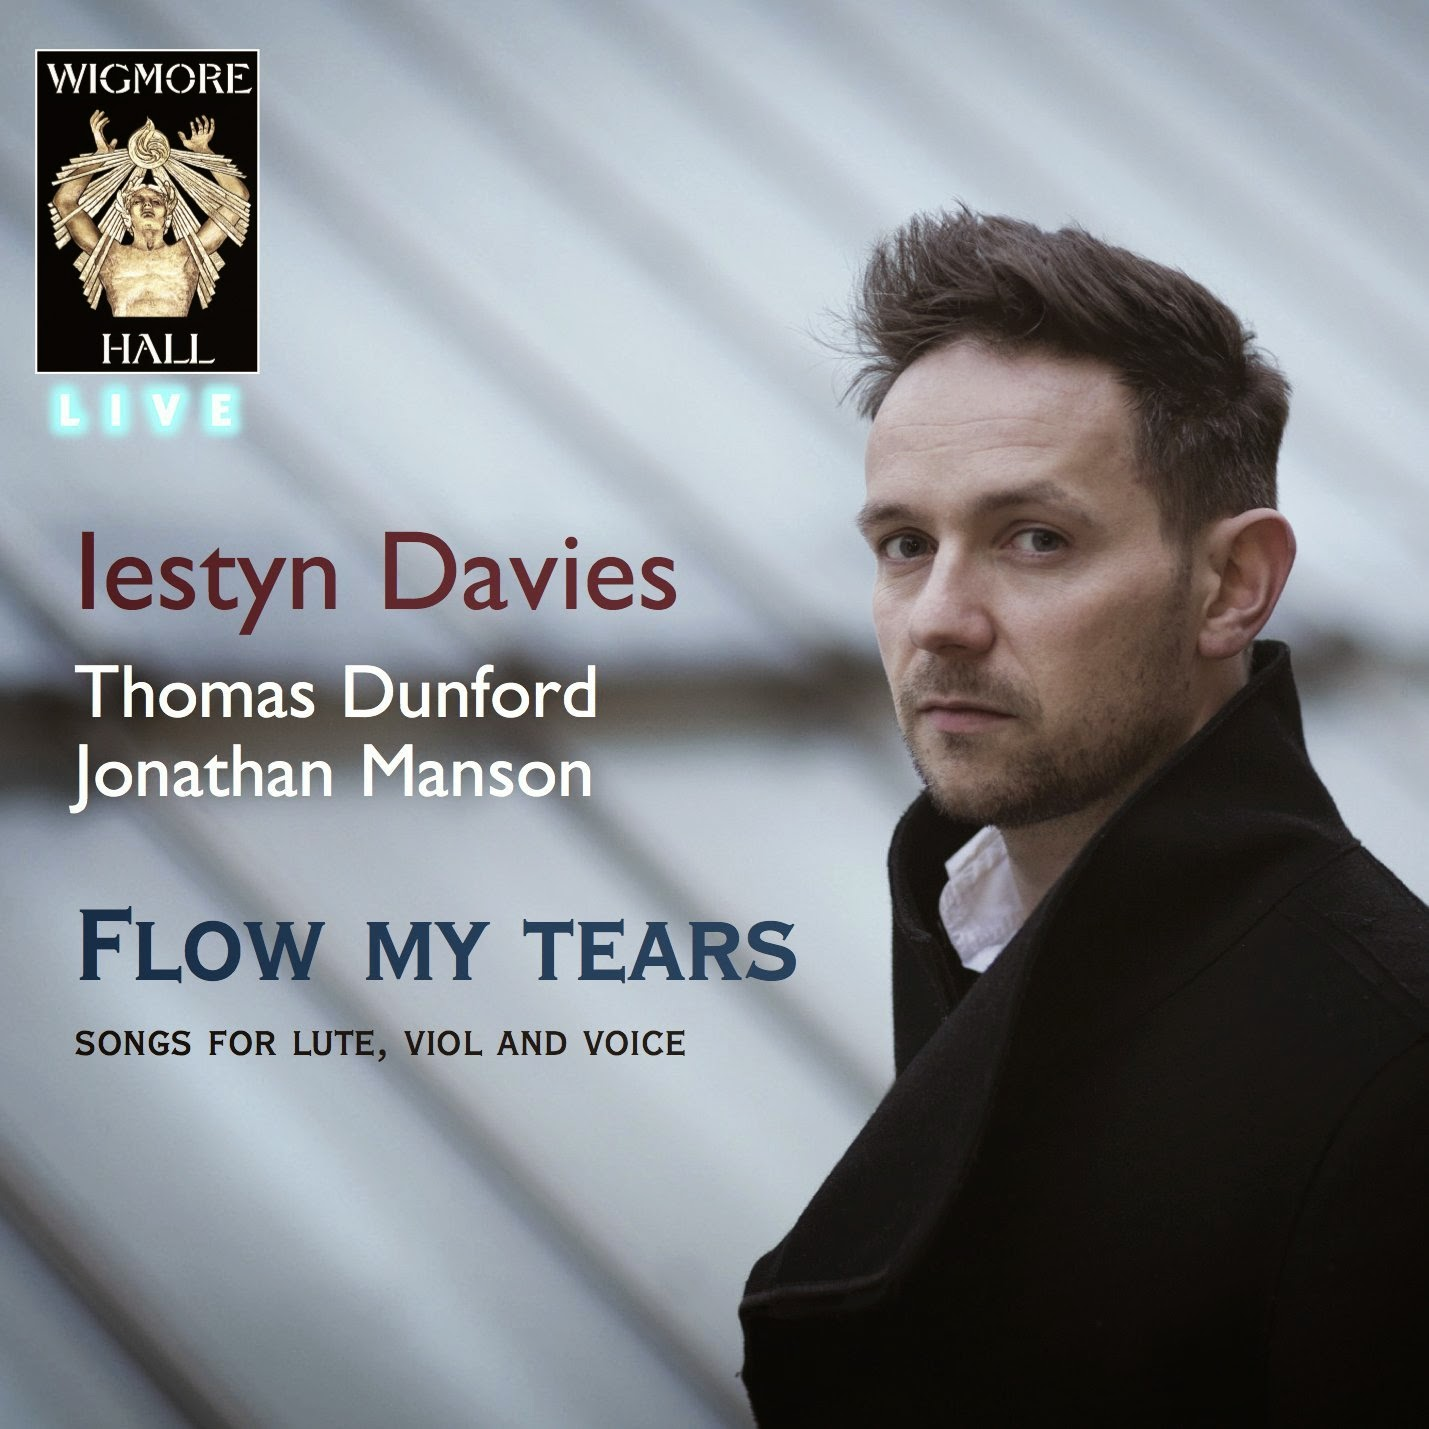 Flow my tears - Iestyn Davies